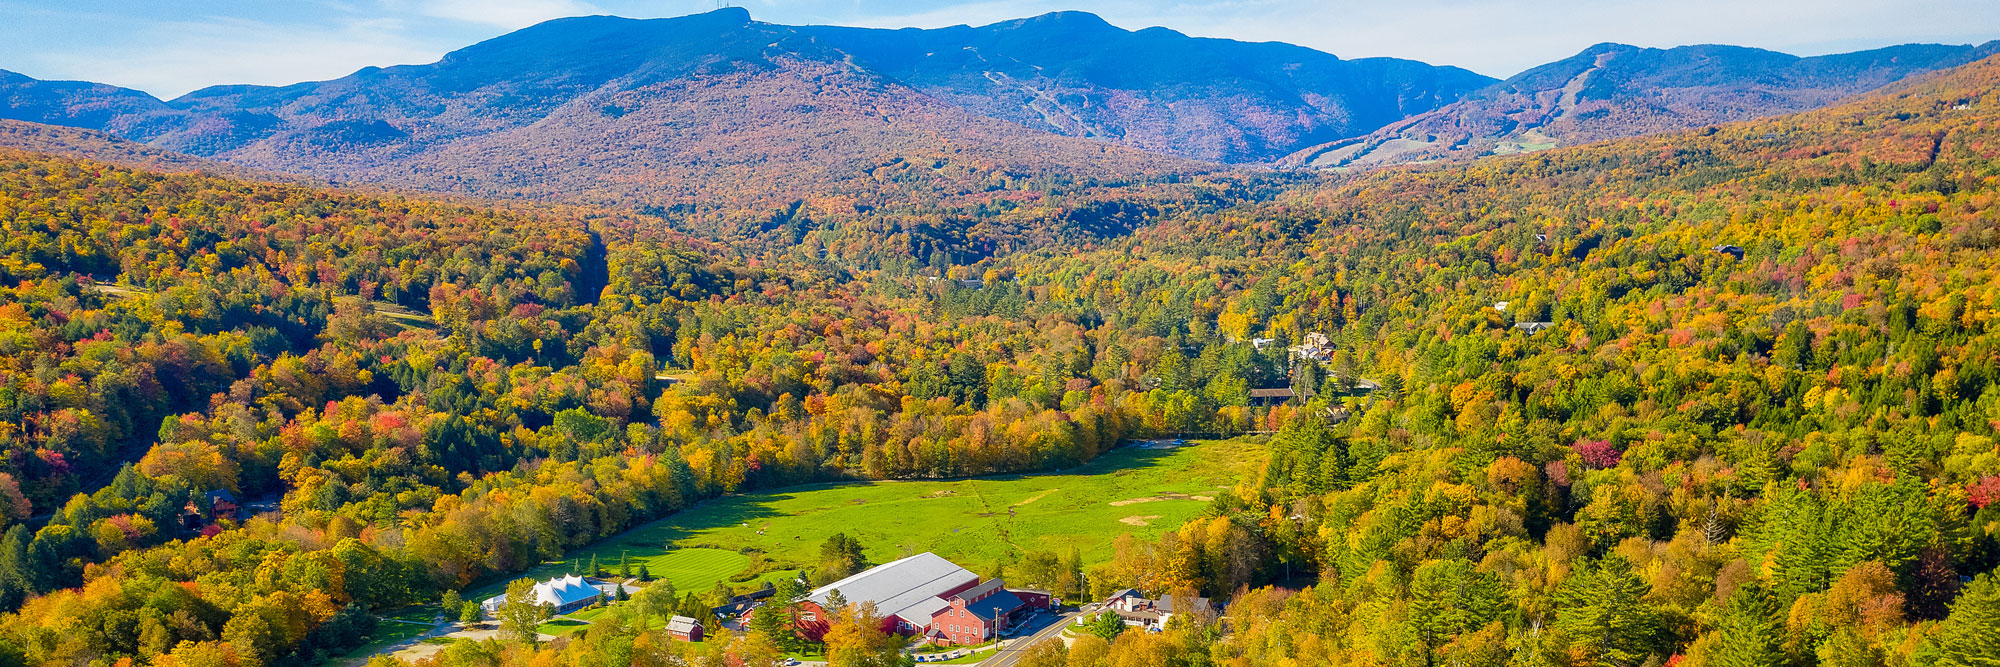 View of Mt. Mansfield and the Green Mountains covered in bright fall foliage.